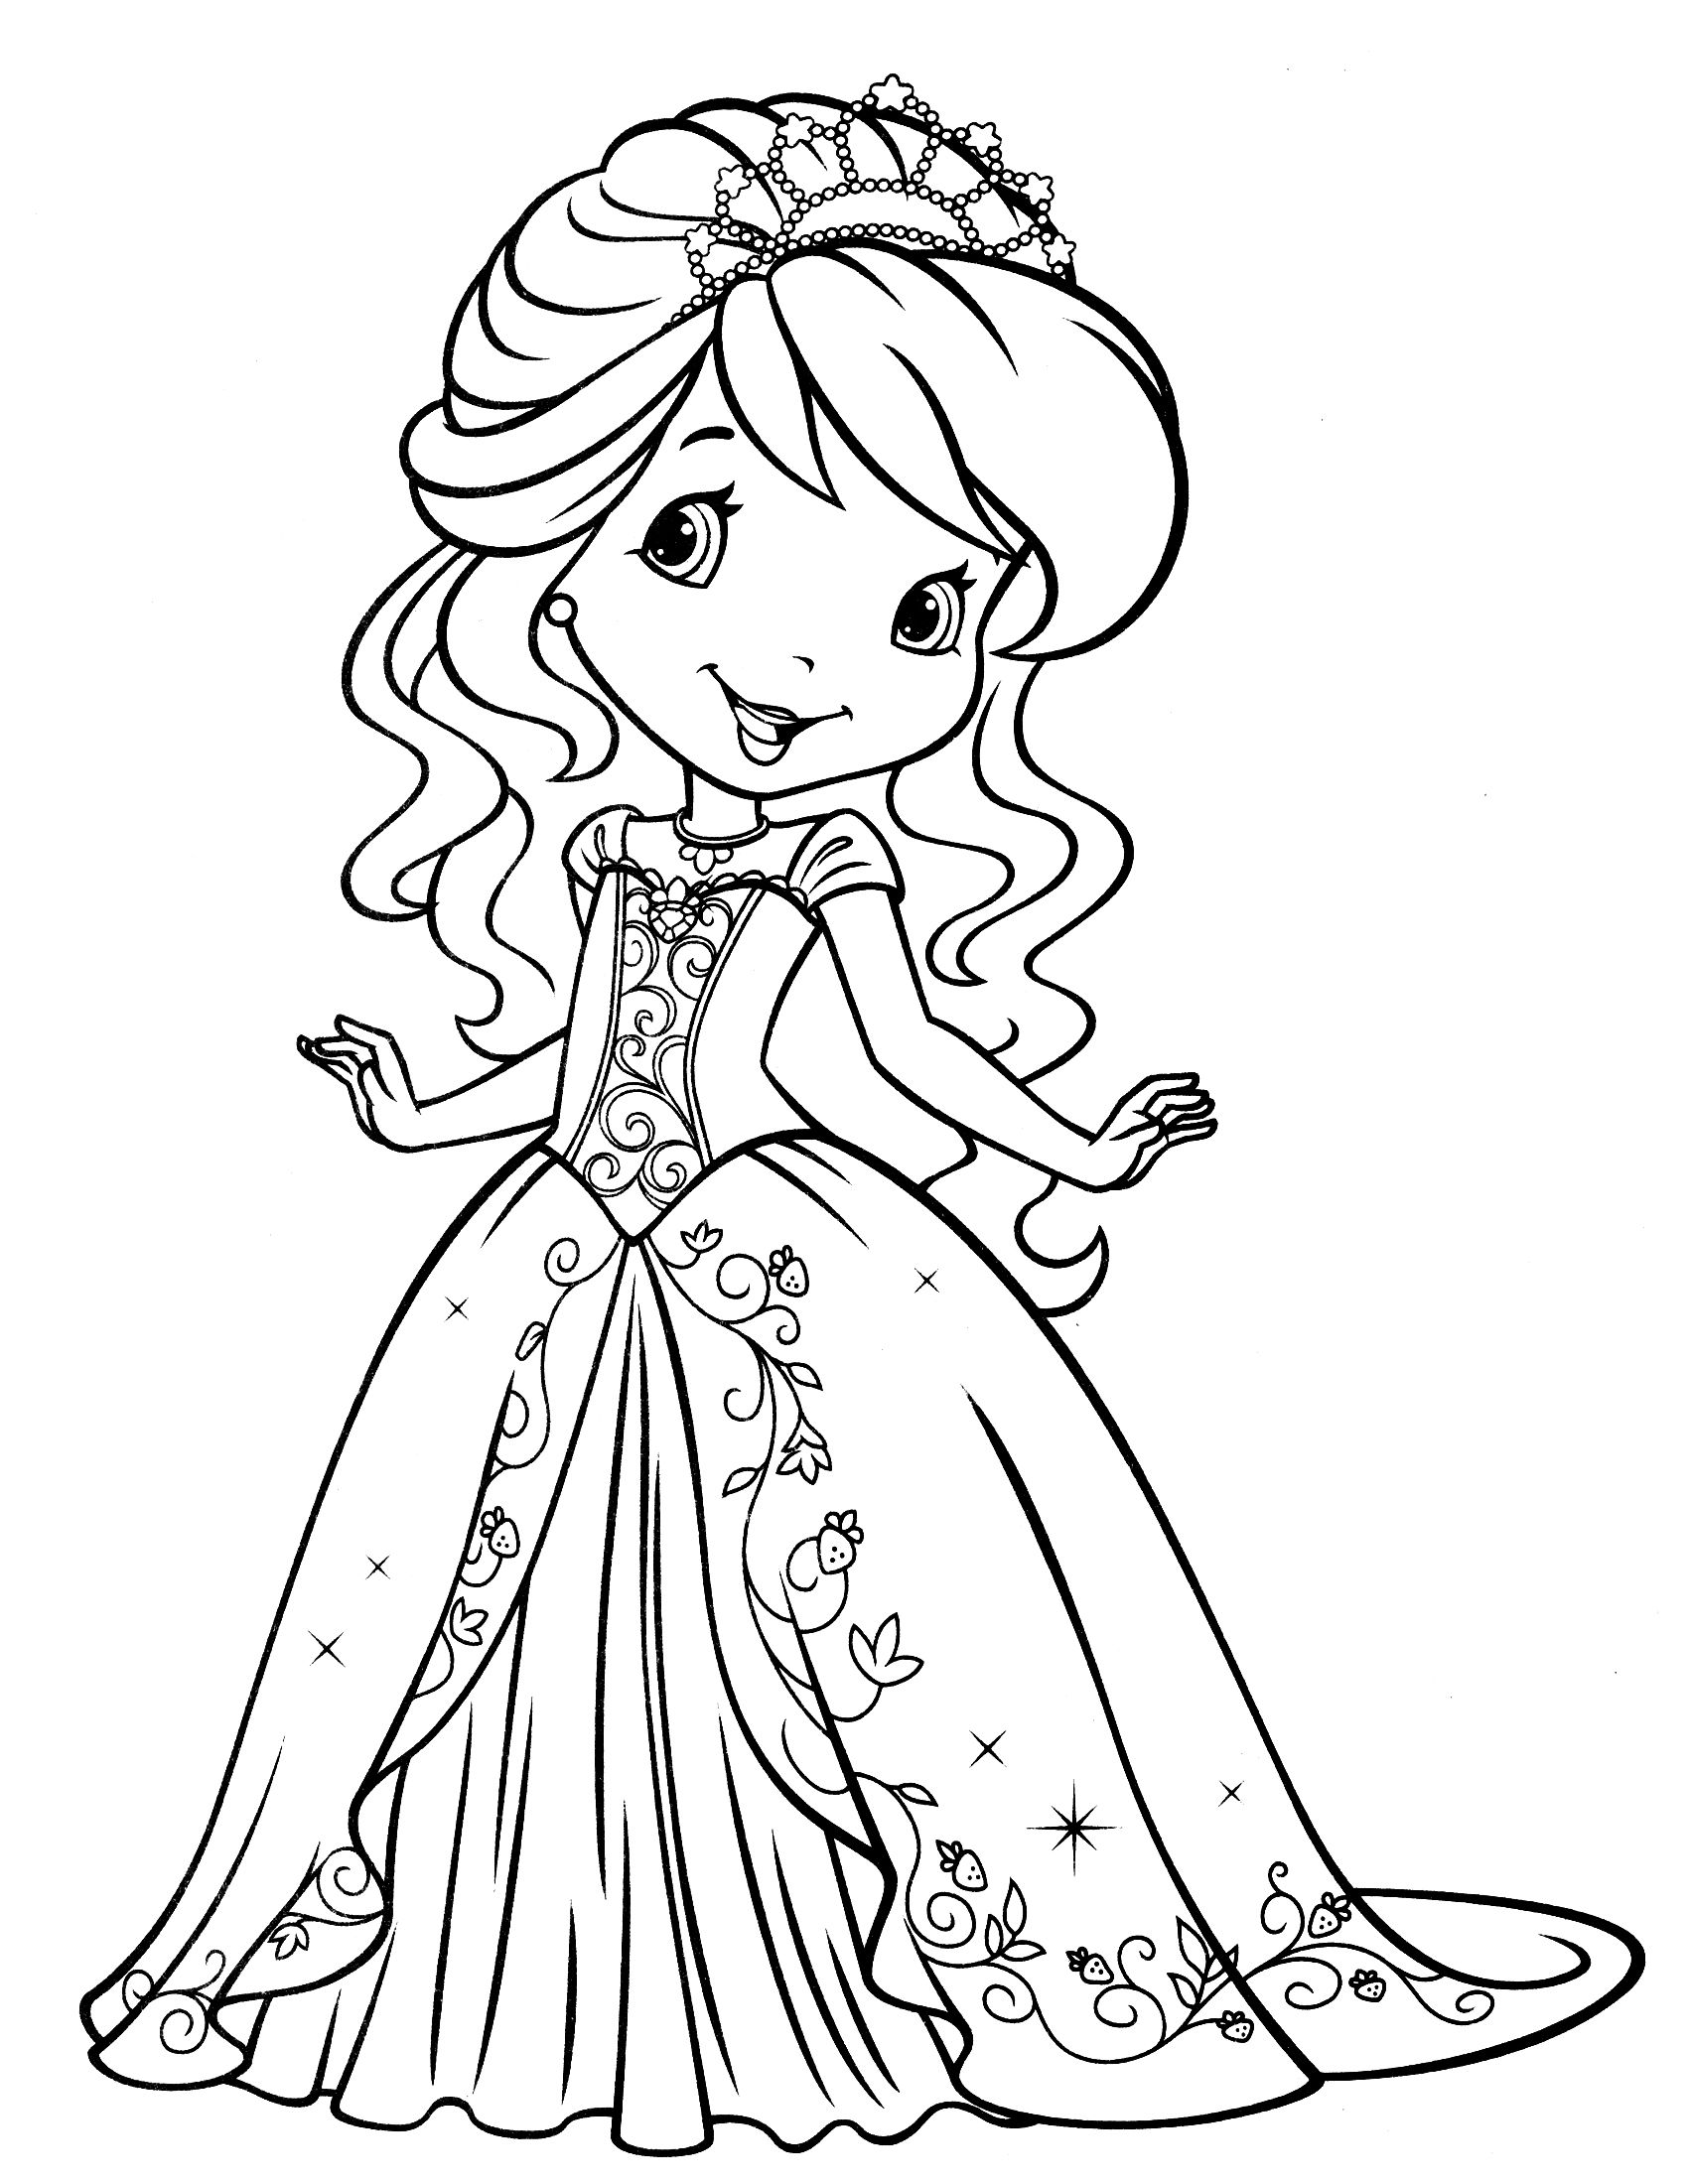 Childrens coloring sheet of a rag doll - Coloring Pages